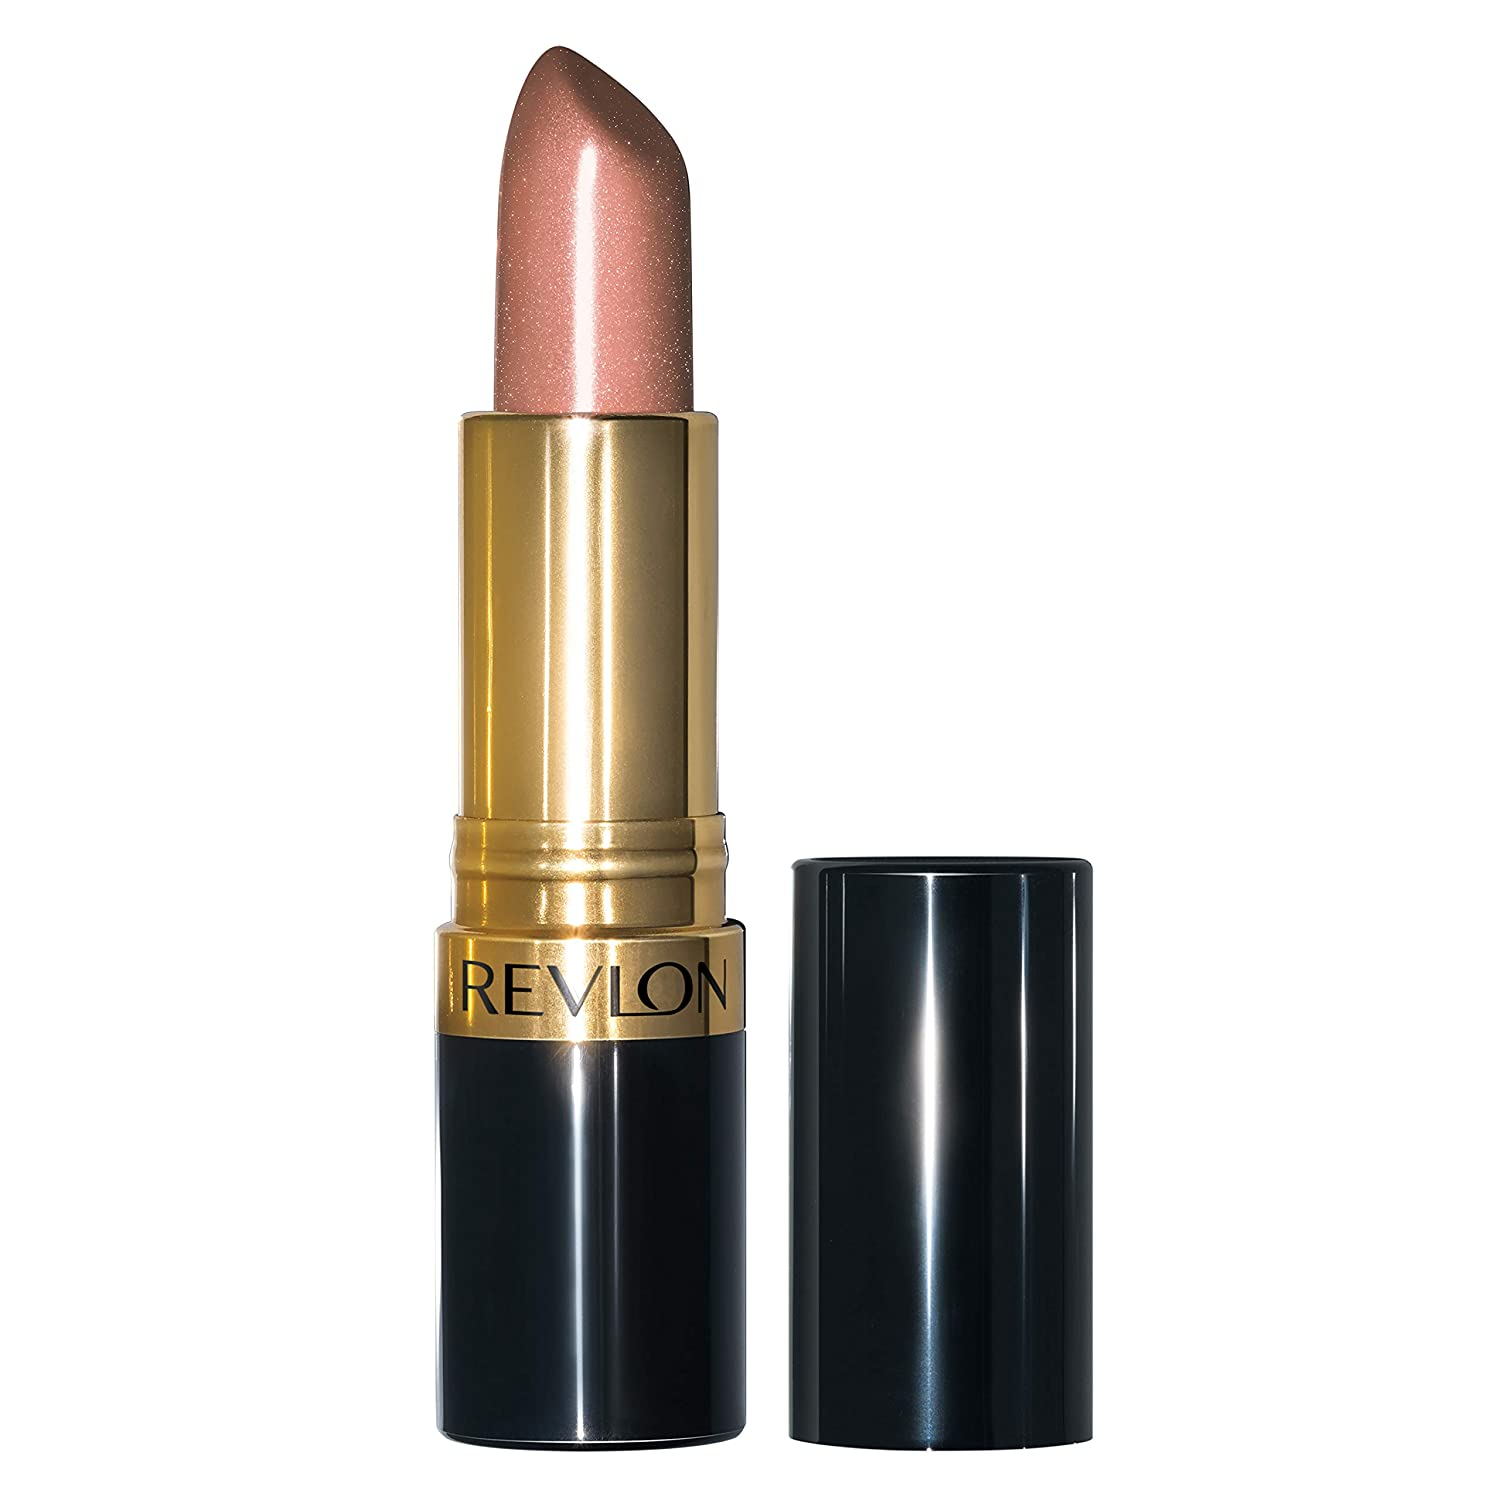 Revlon Super Lustrous Lipstick, Champagne On Ice,1 Count